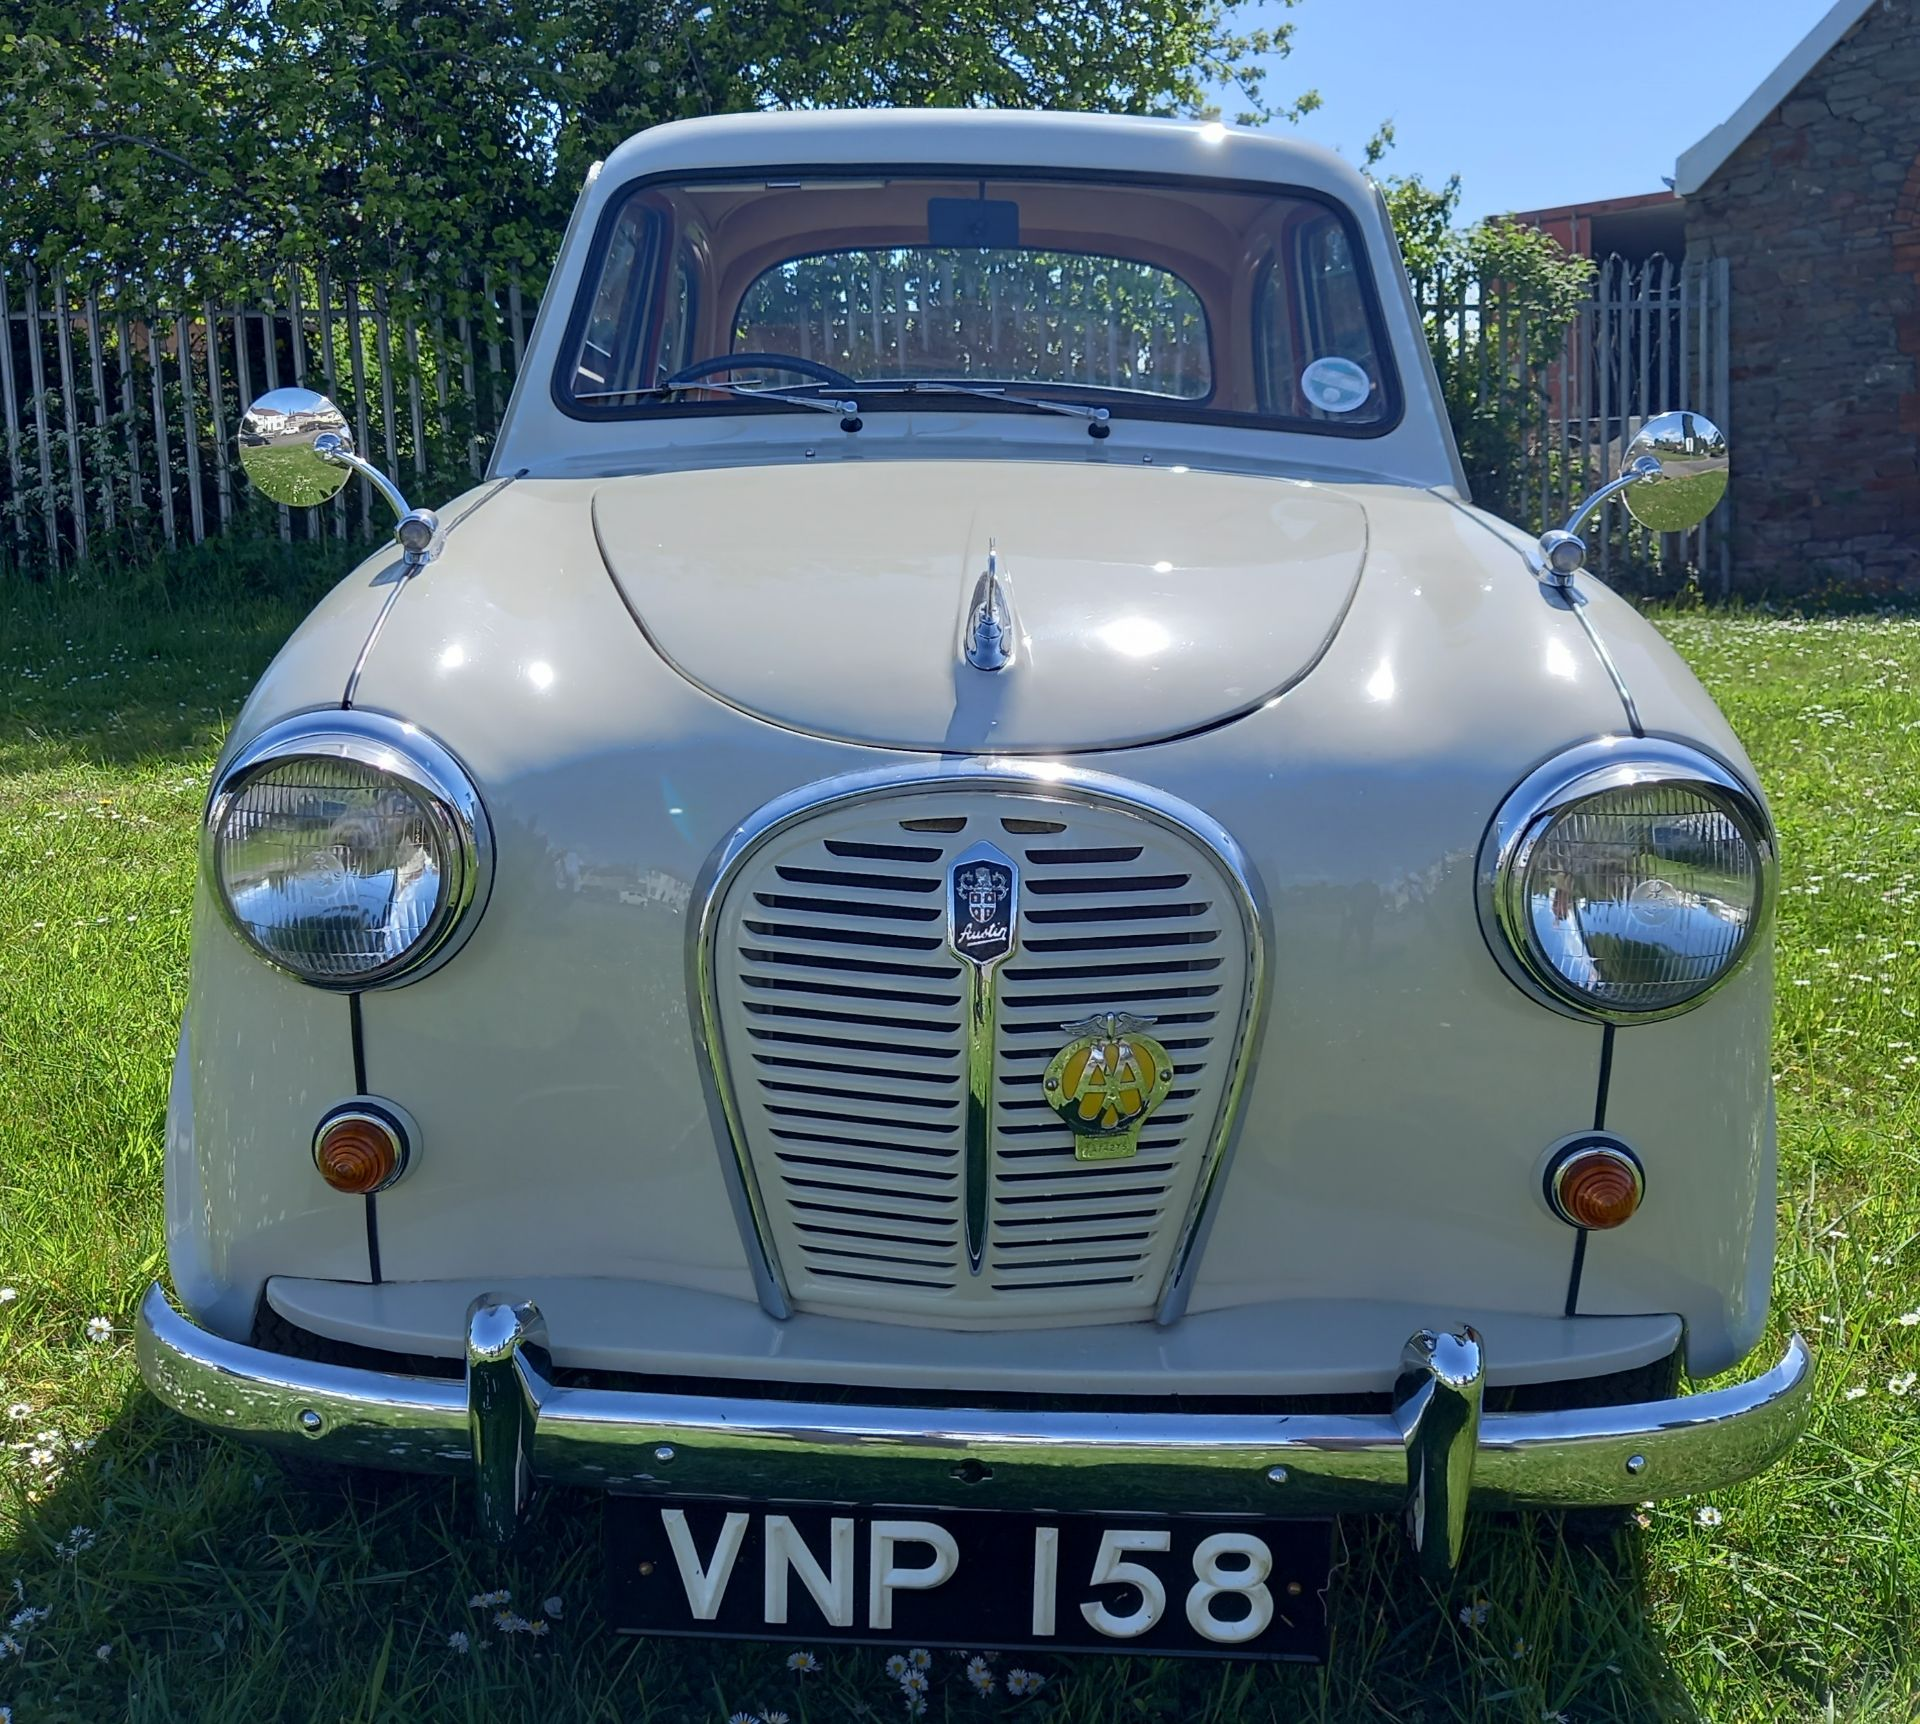 VNP 158 - 1958 AUSTIN A35 SALOON - 948CC - FULLY RESTORED CLASSIC CAR - Image 2 of 24